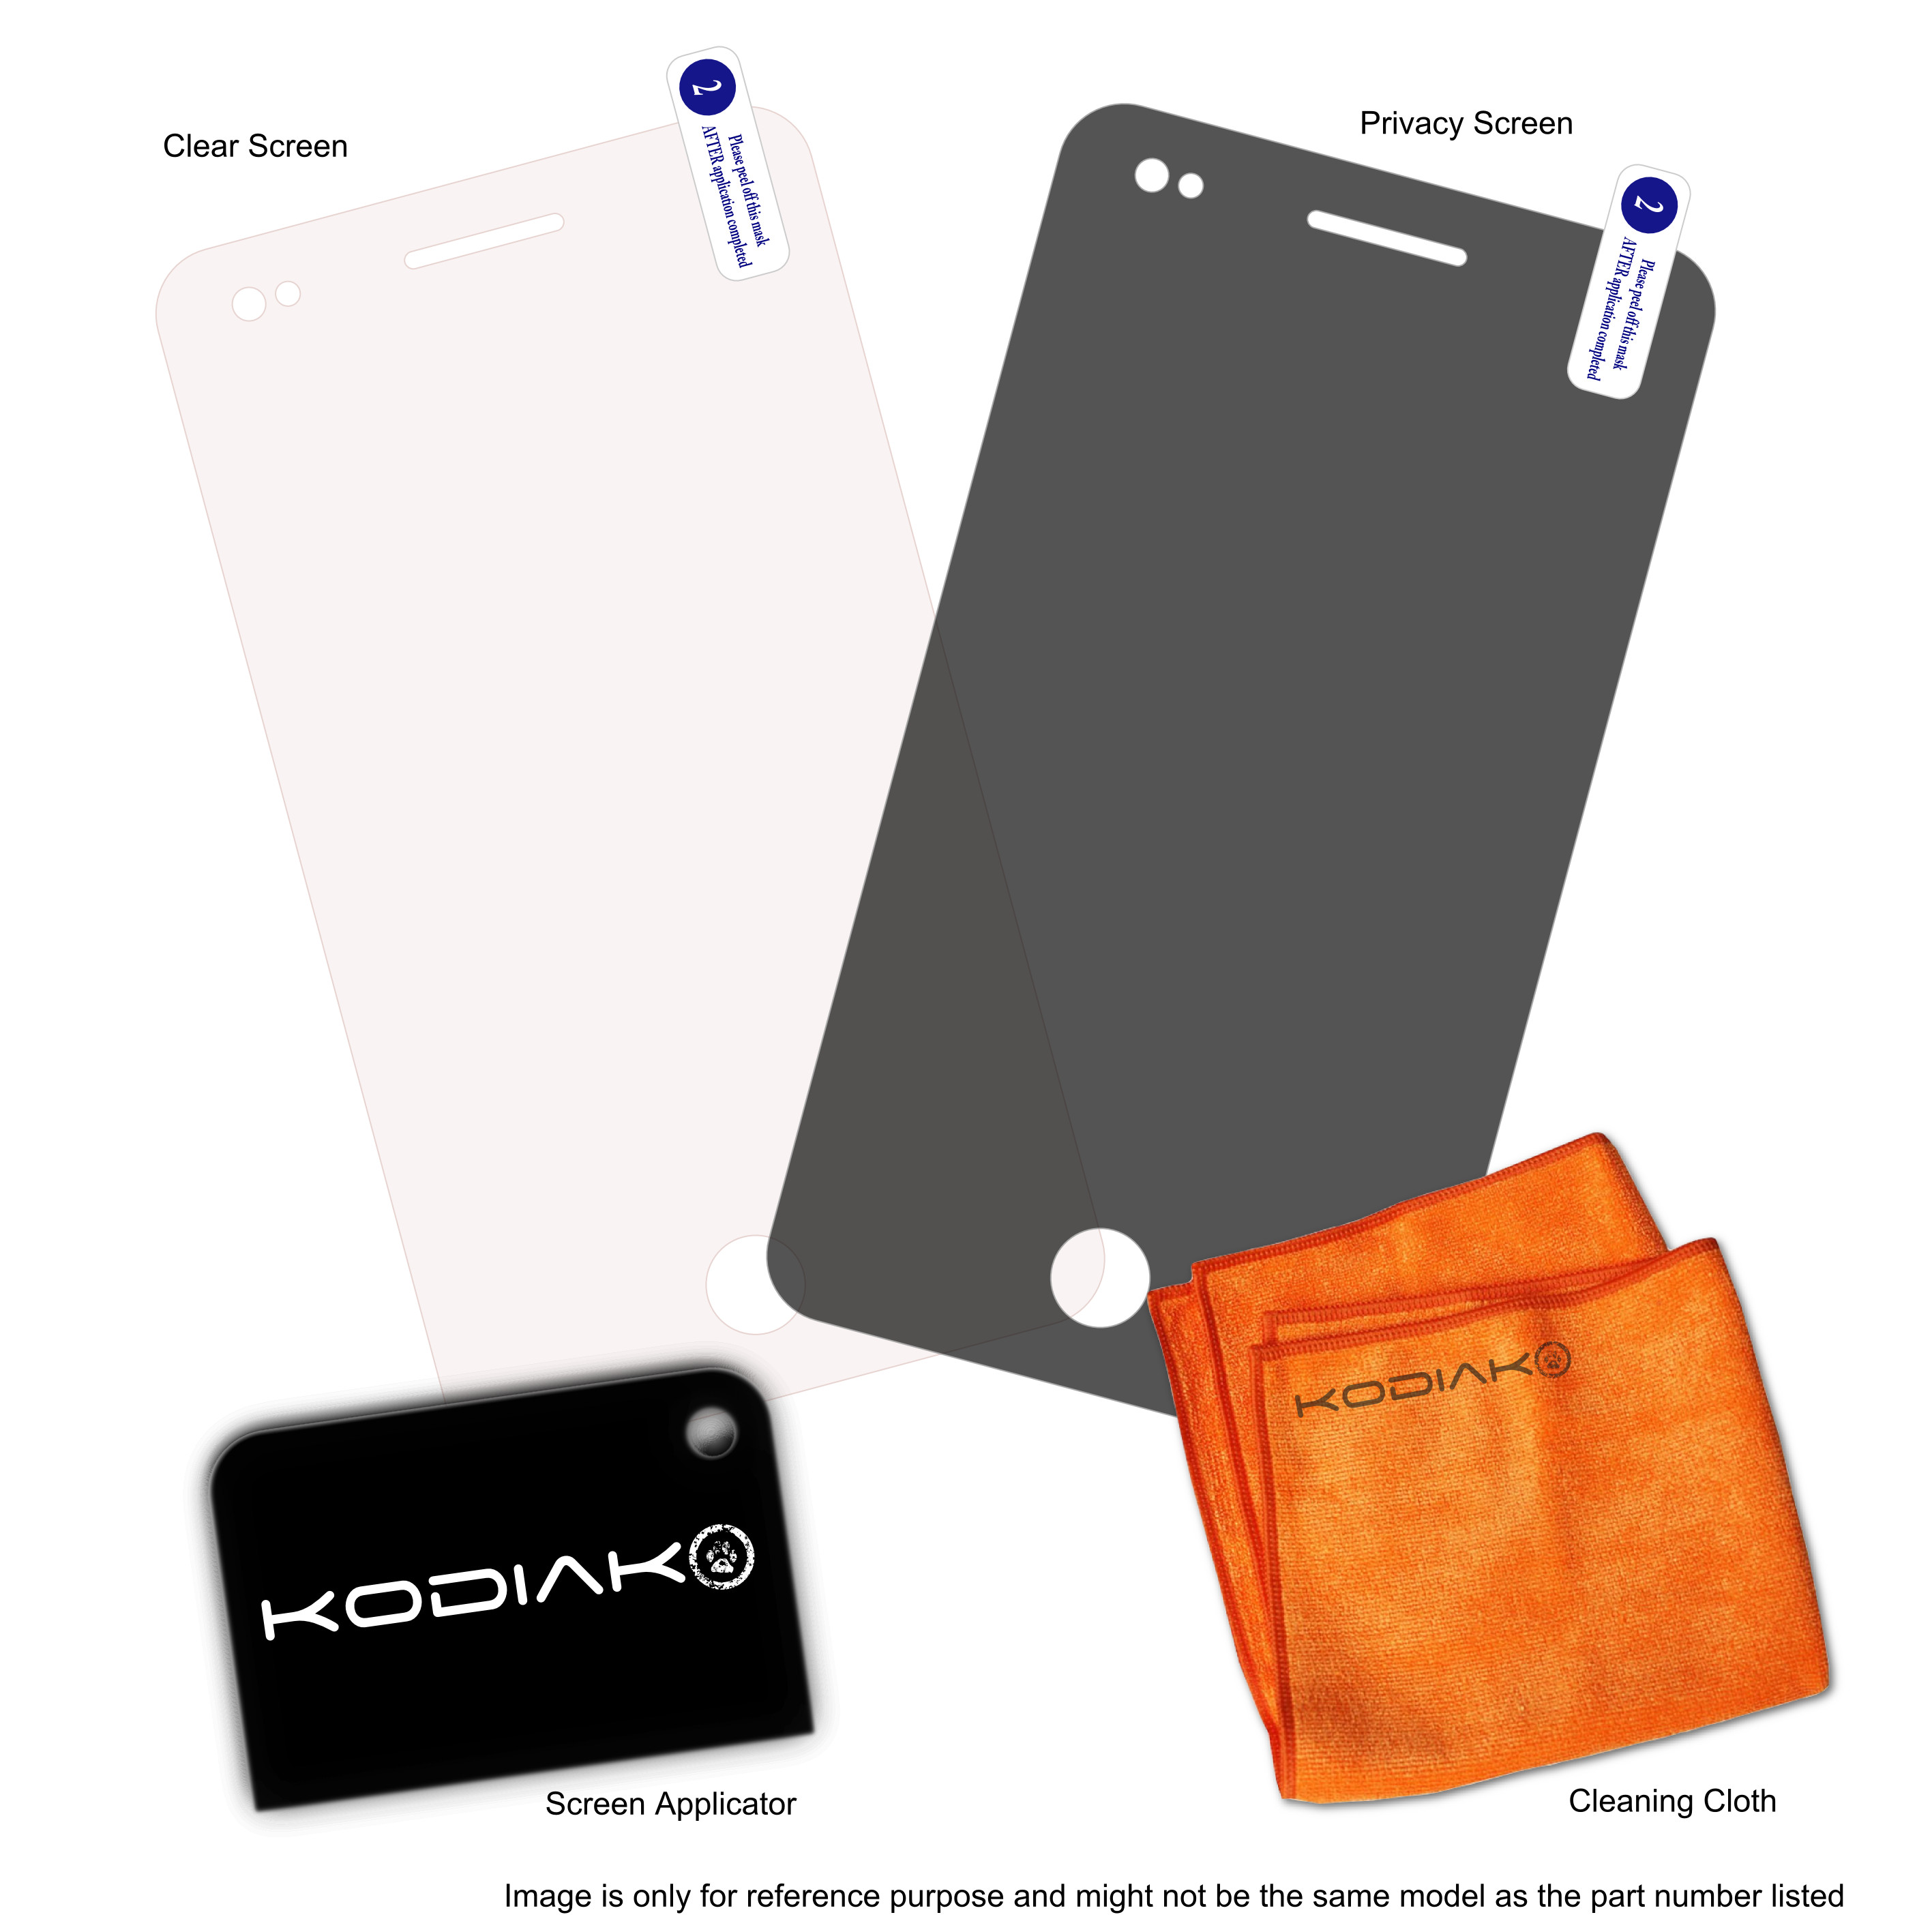 original-kodiak-screen-protector-nokia-303-asha-iprotect-2-package-clear-privacy